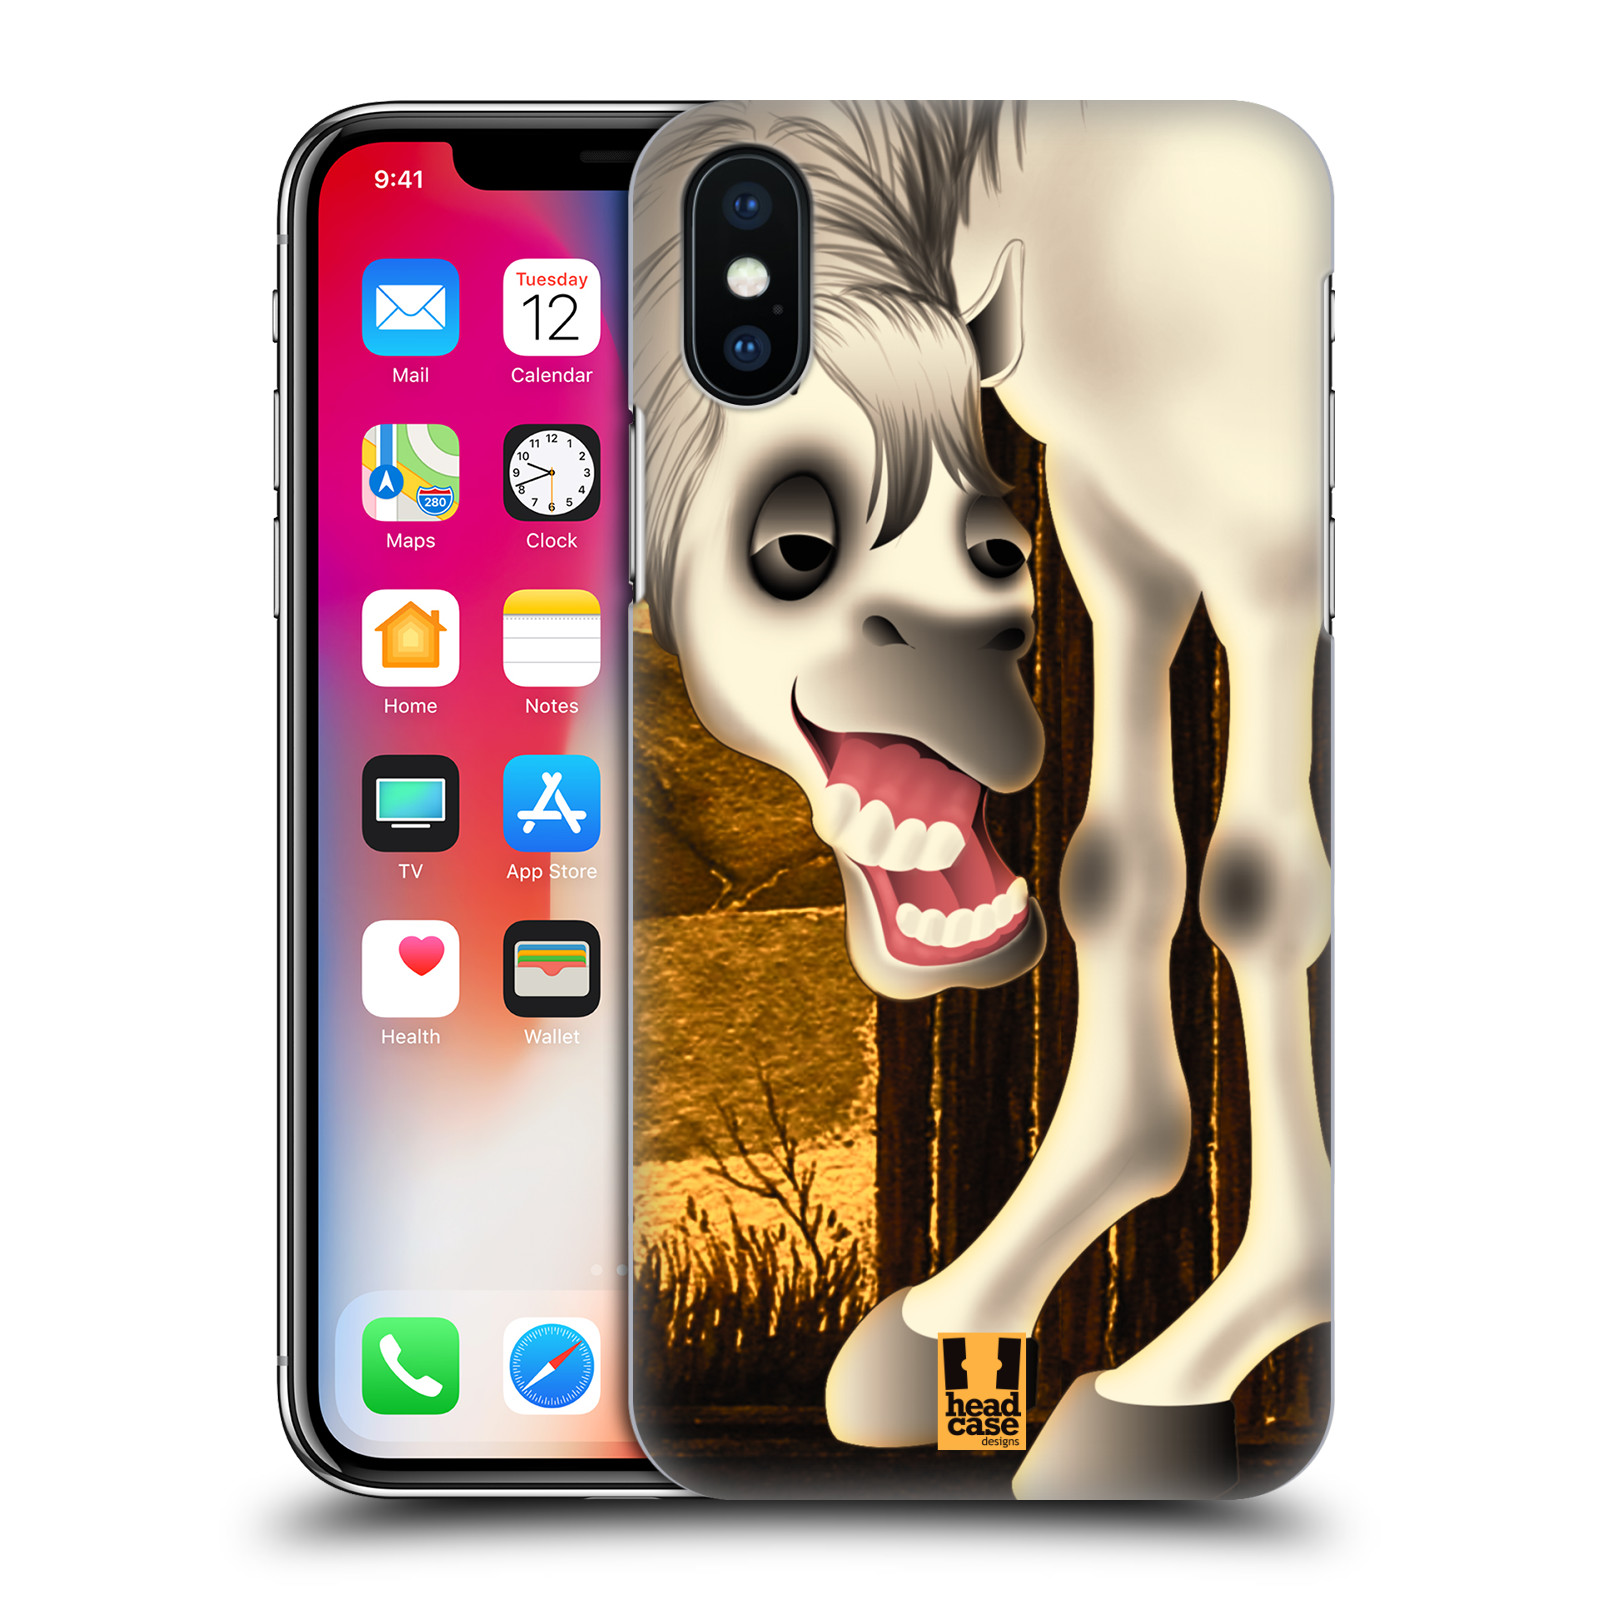 HEAD-CASE-DESIGNS-LONG-LEGGED-HARD-BACK-CASE-FOR-APPLE-iPHONE-PHONES